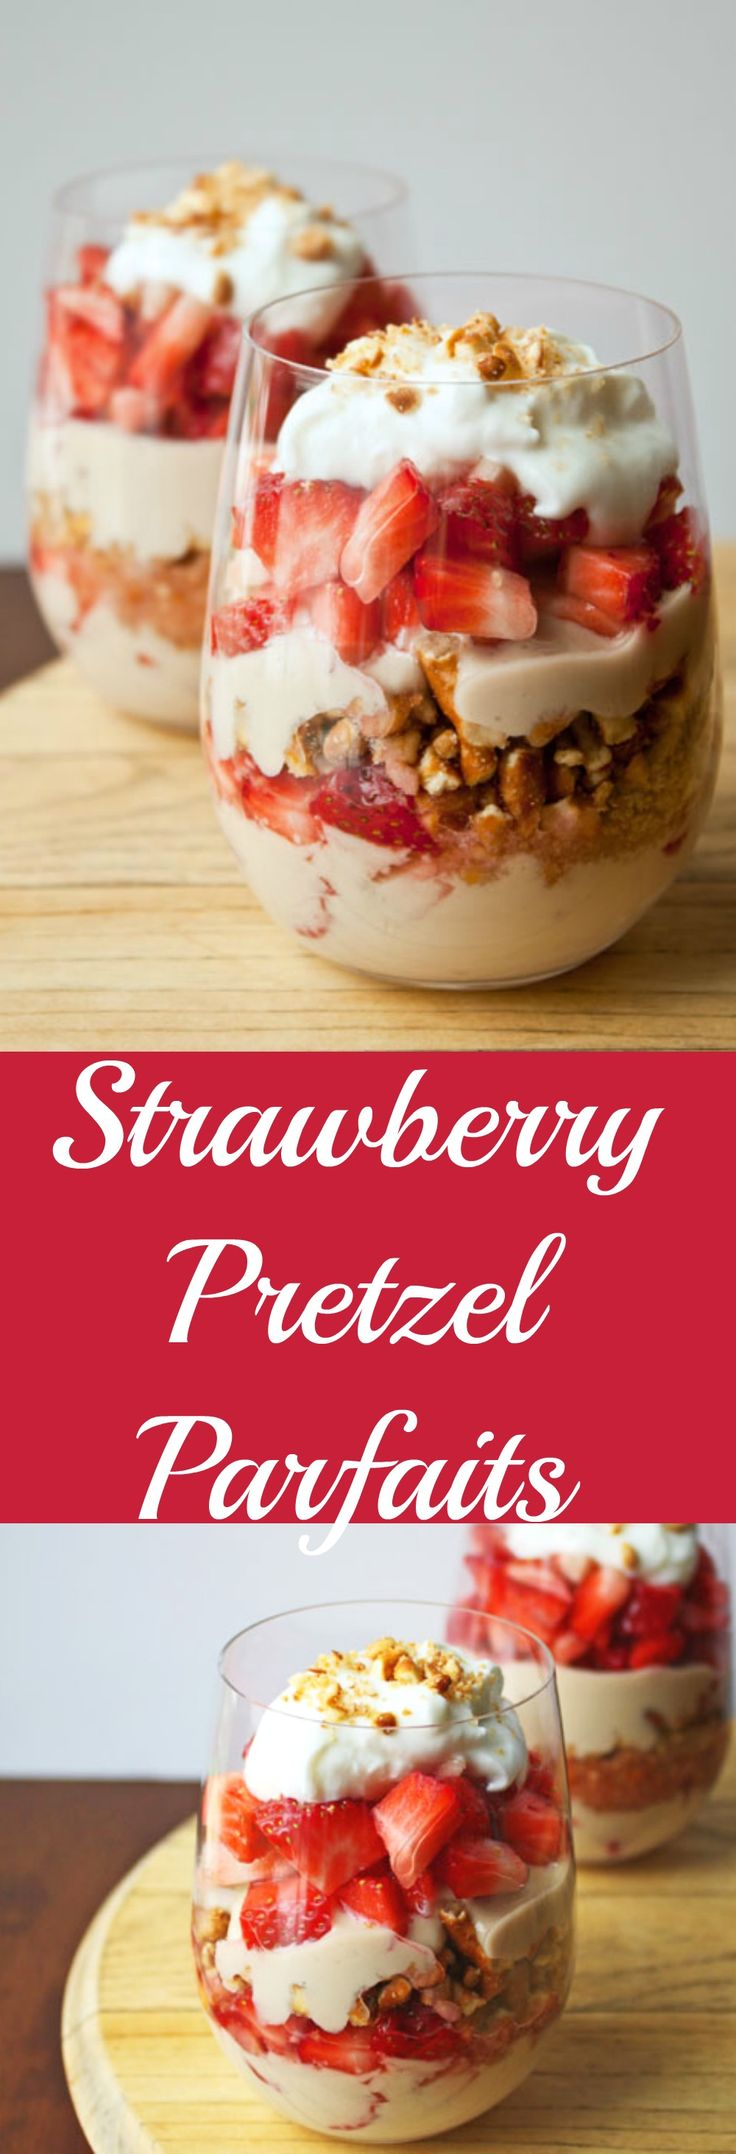 Strawberry Pretzel Salad in parfait form. Serves two!